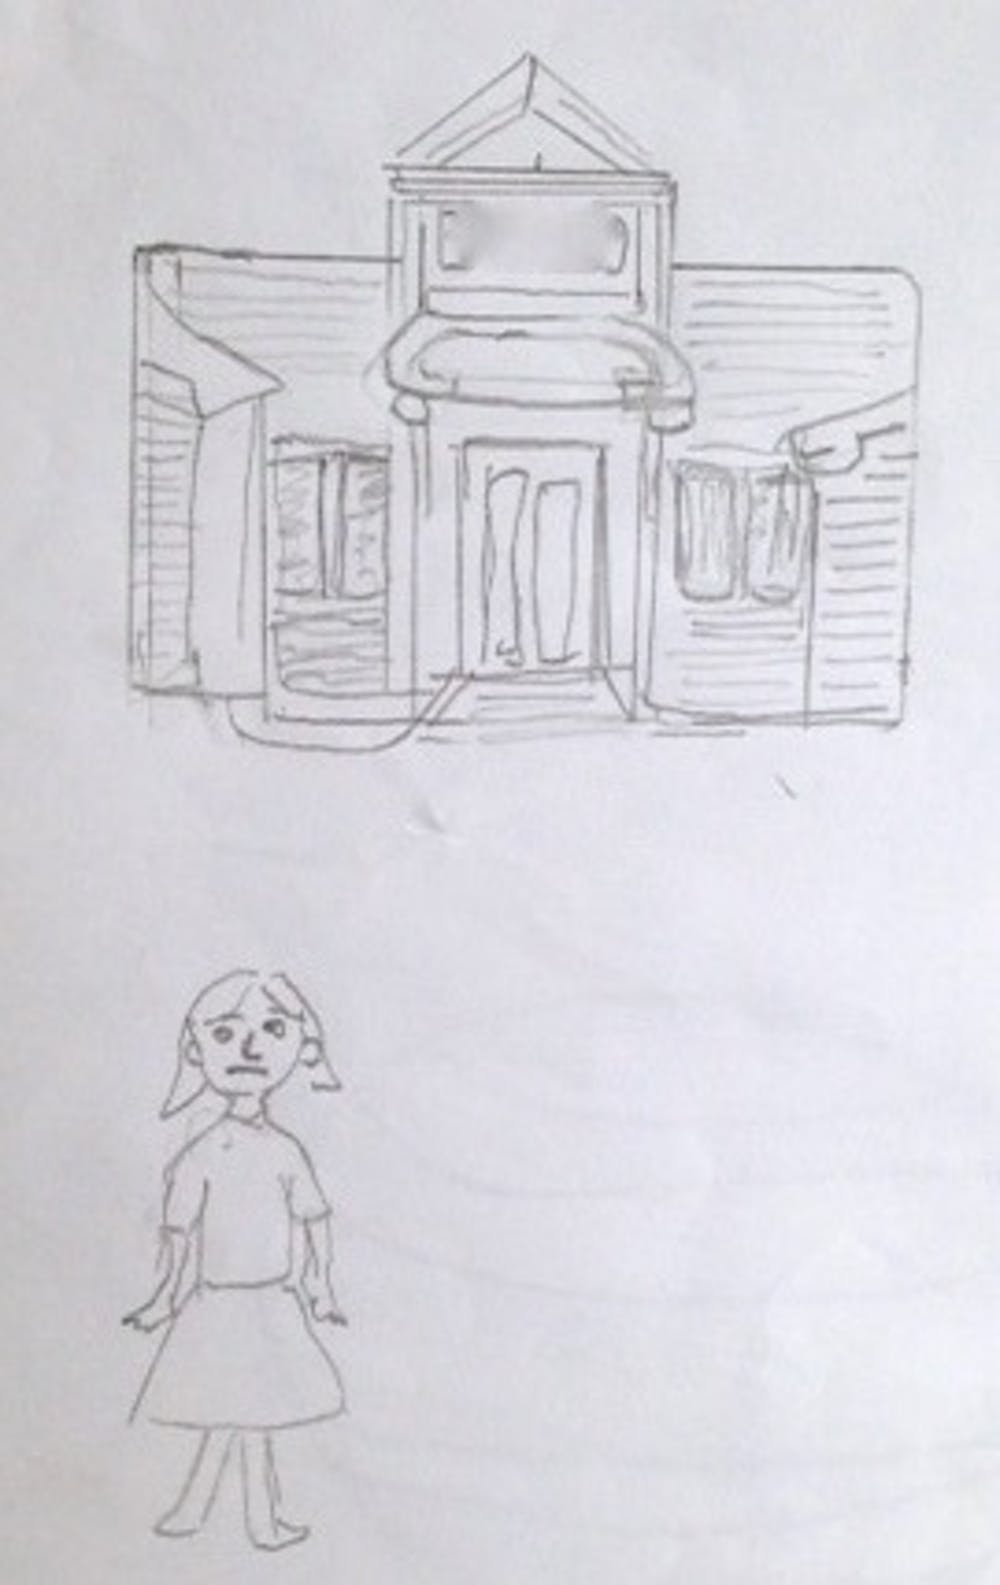 Drawings reveal the struggles and triumphs of child refugees